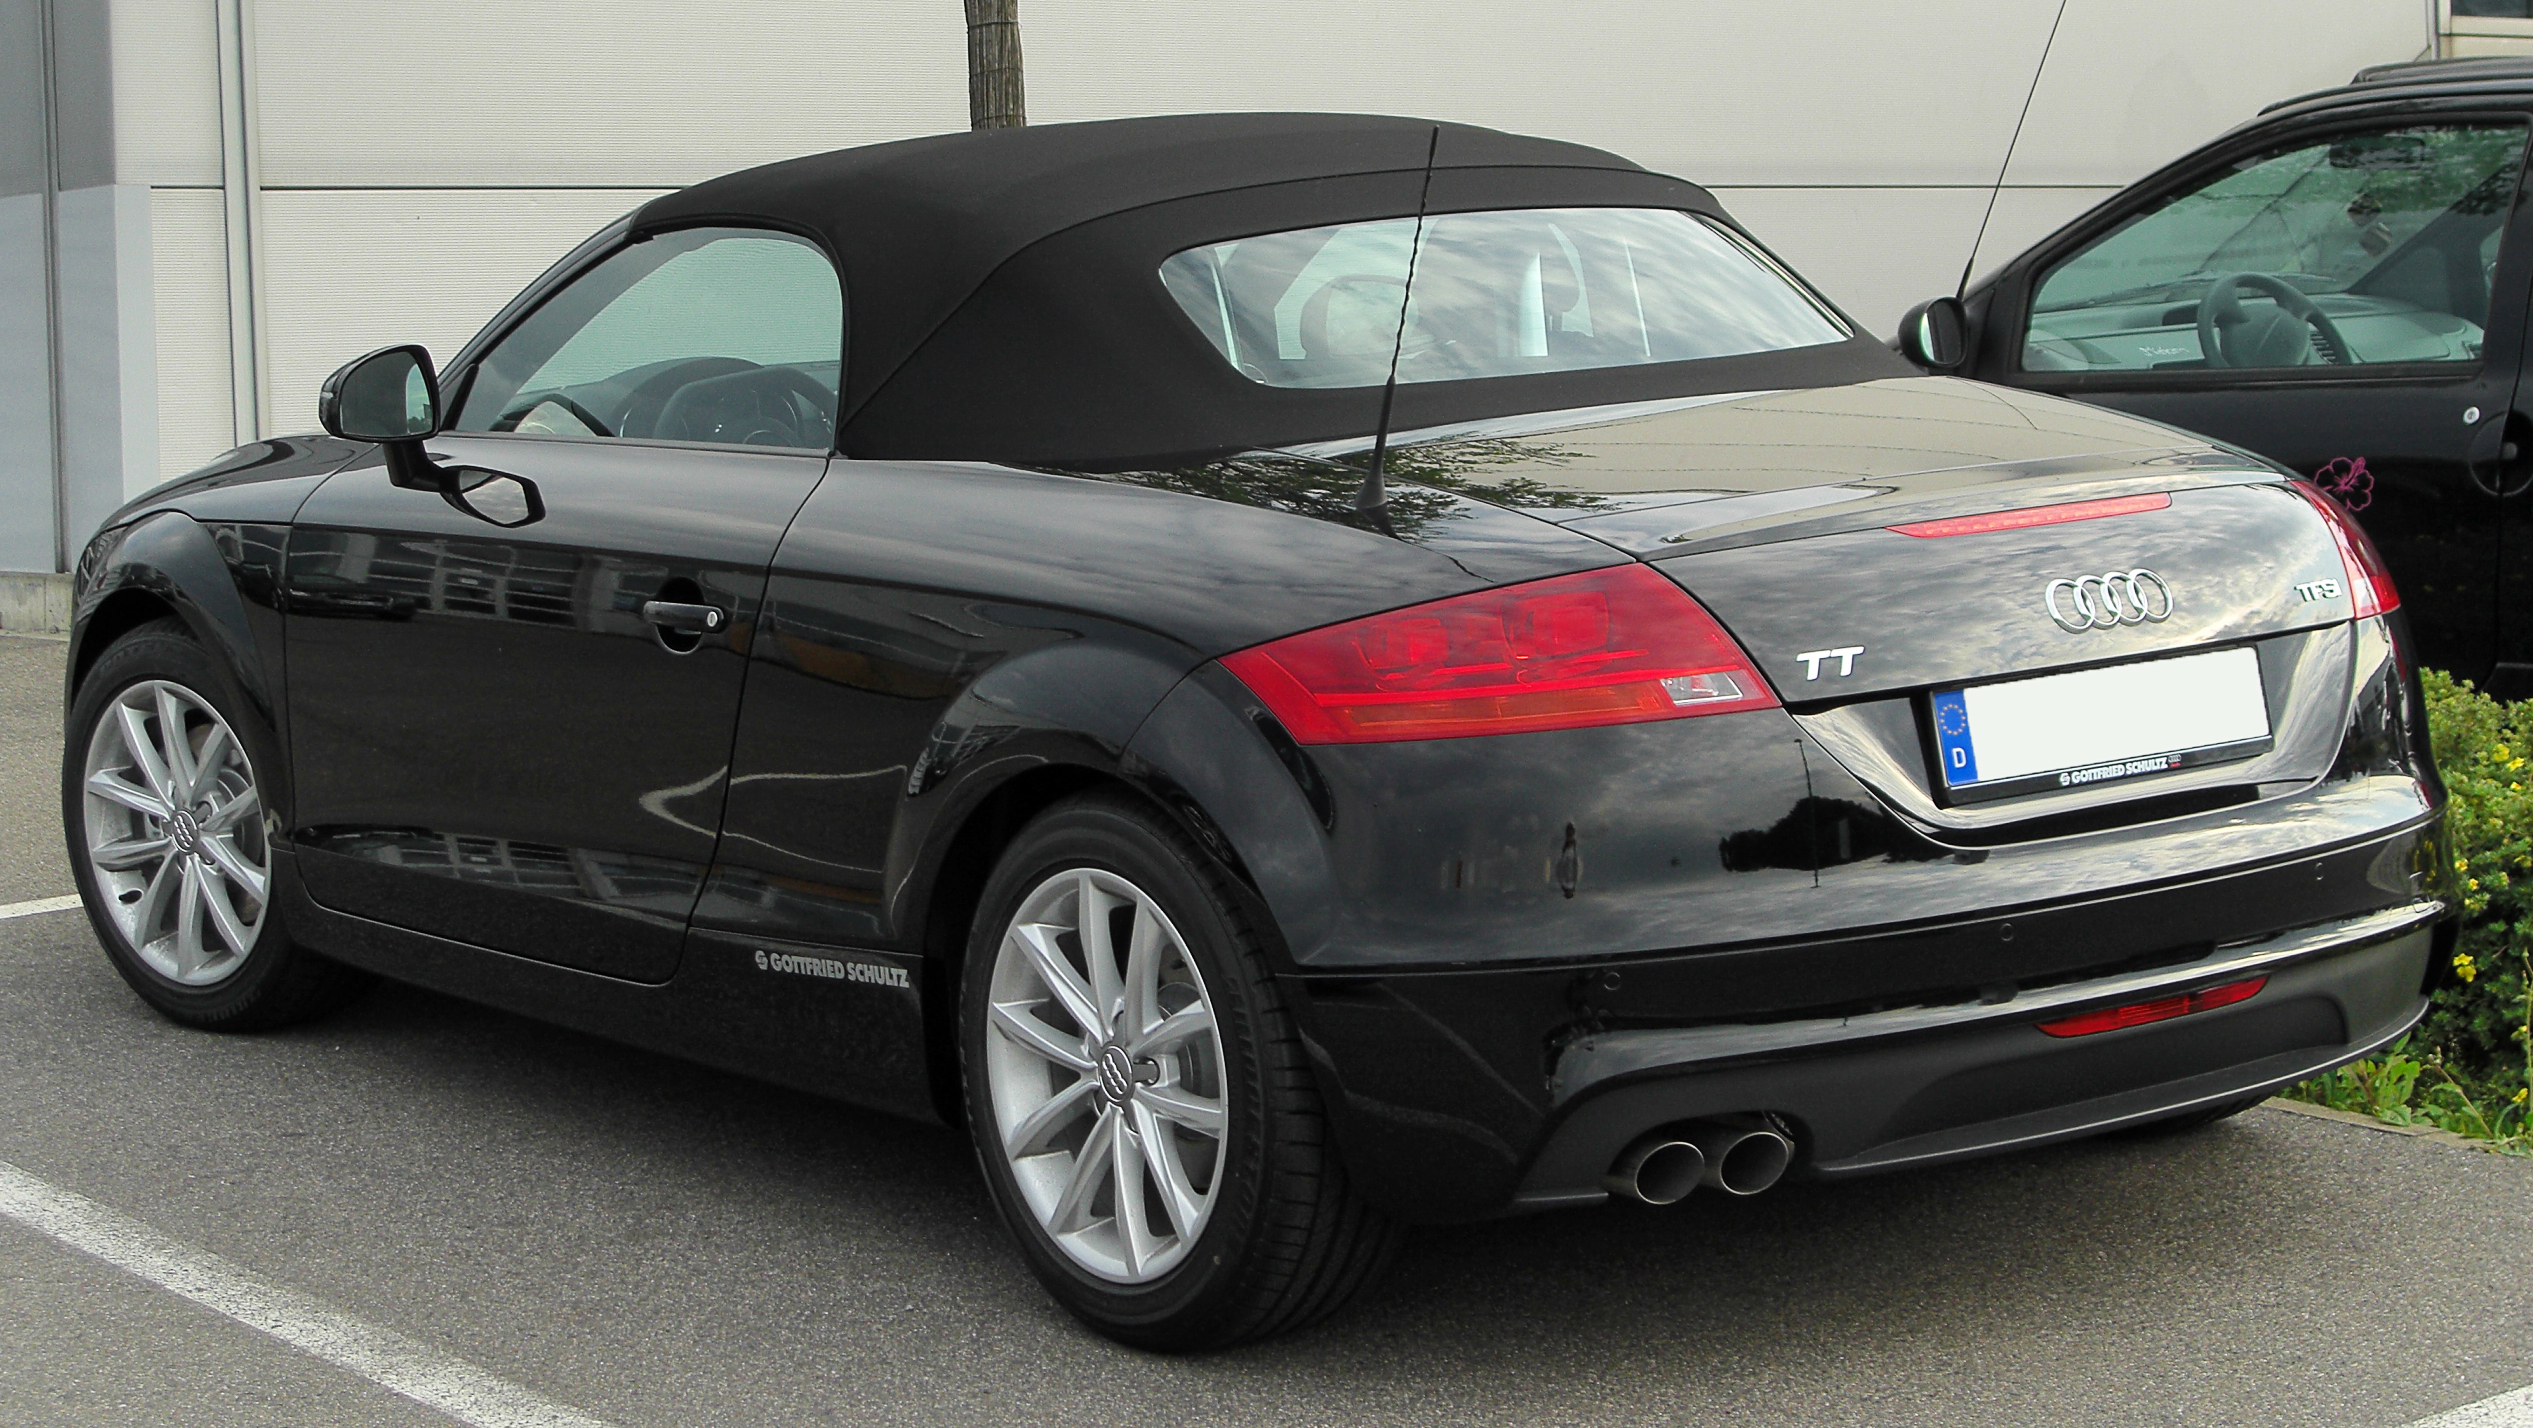 File:Audi TT Roadster TFSI (8J) Facelift rear 20100805.jpg ...